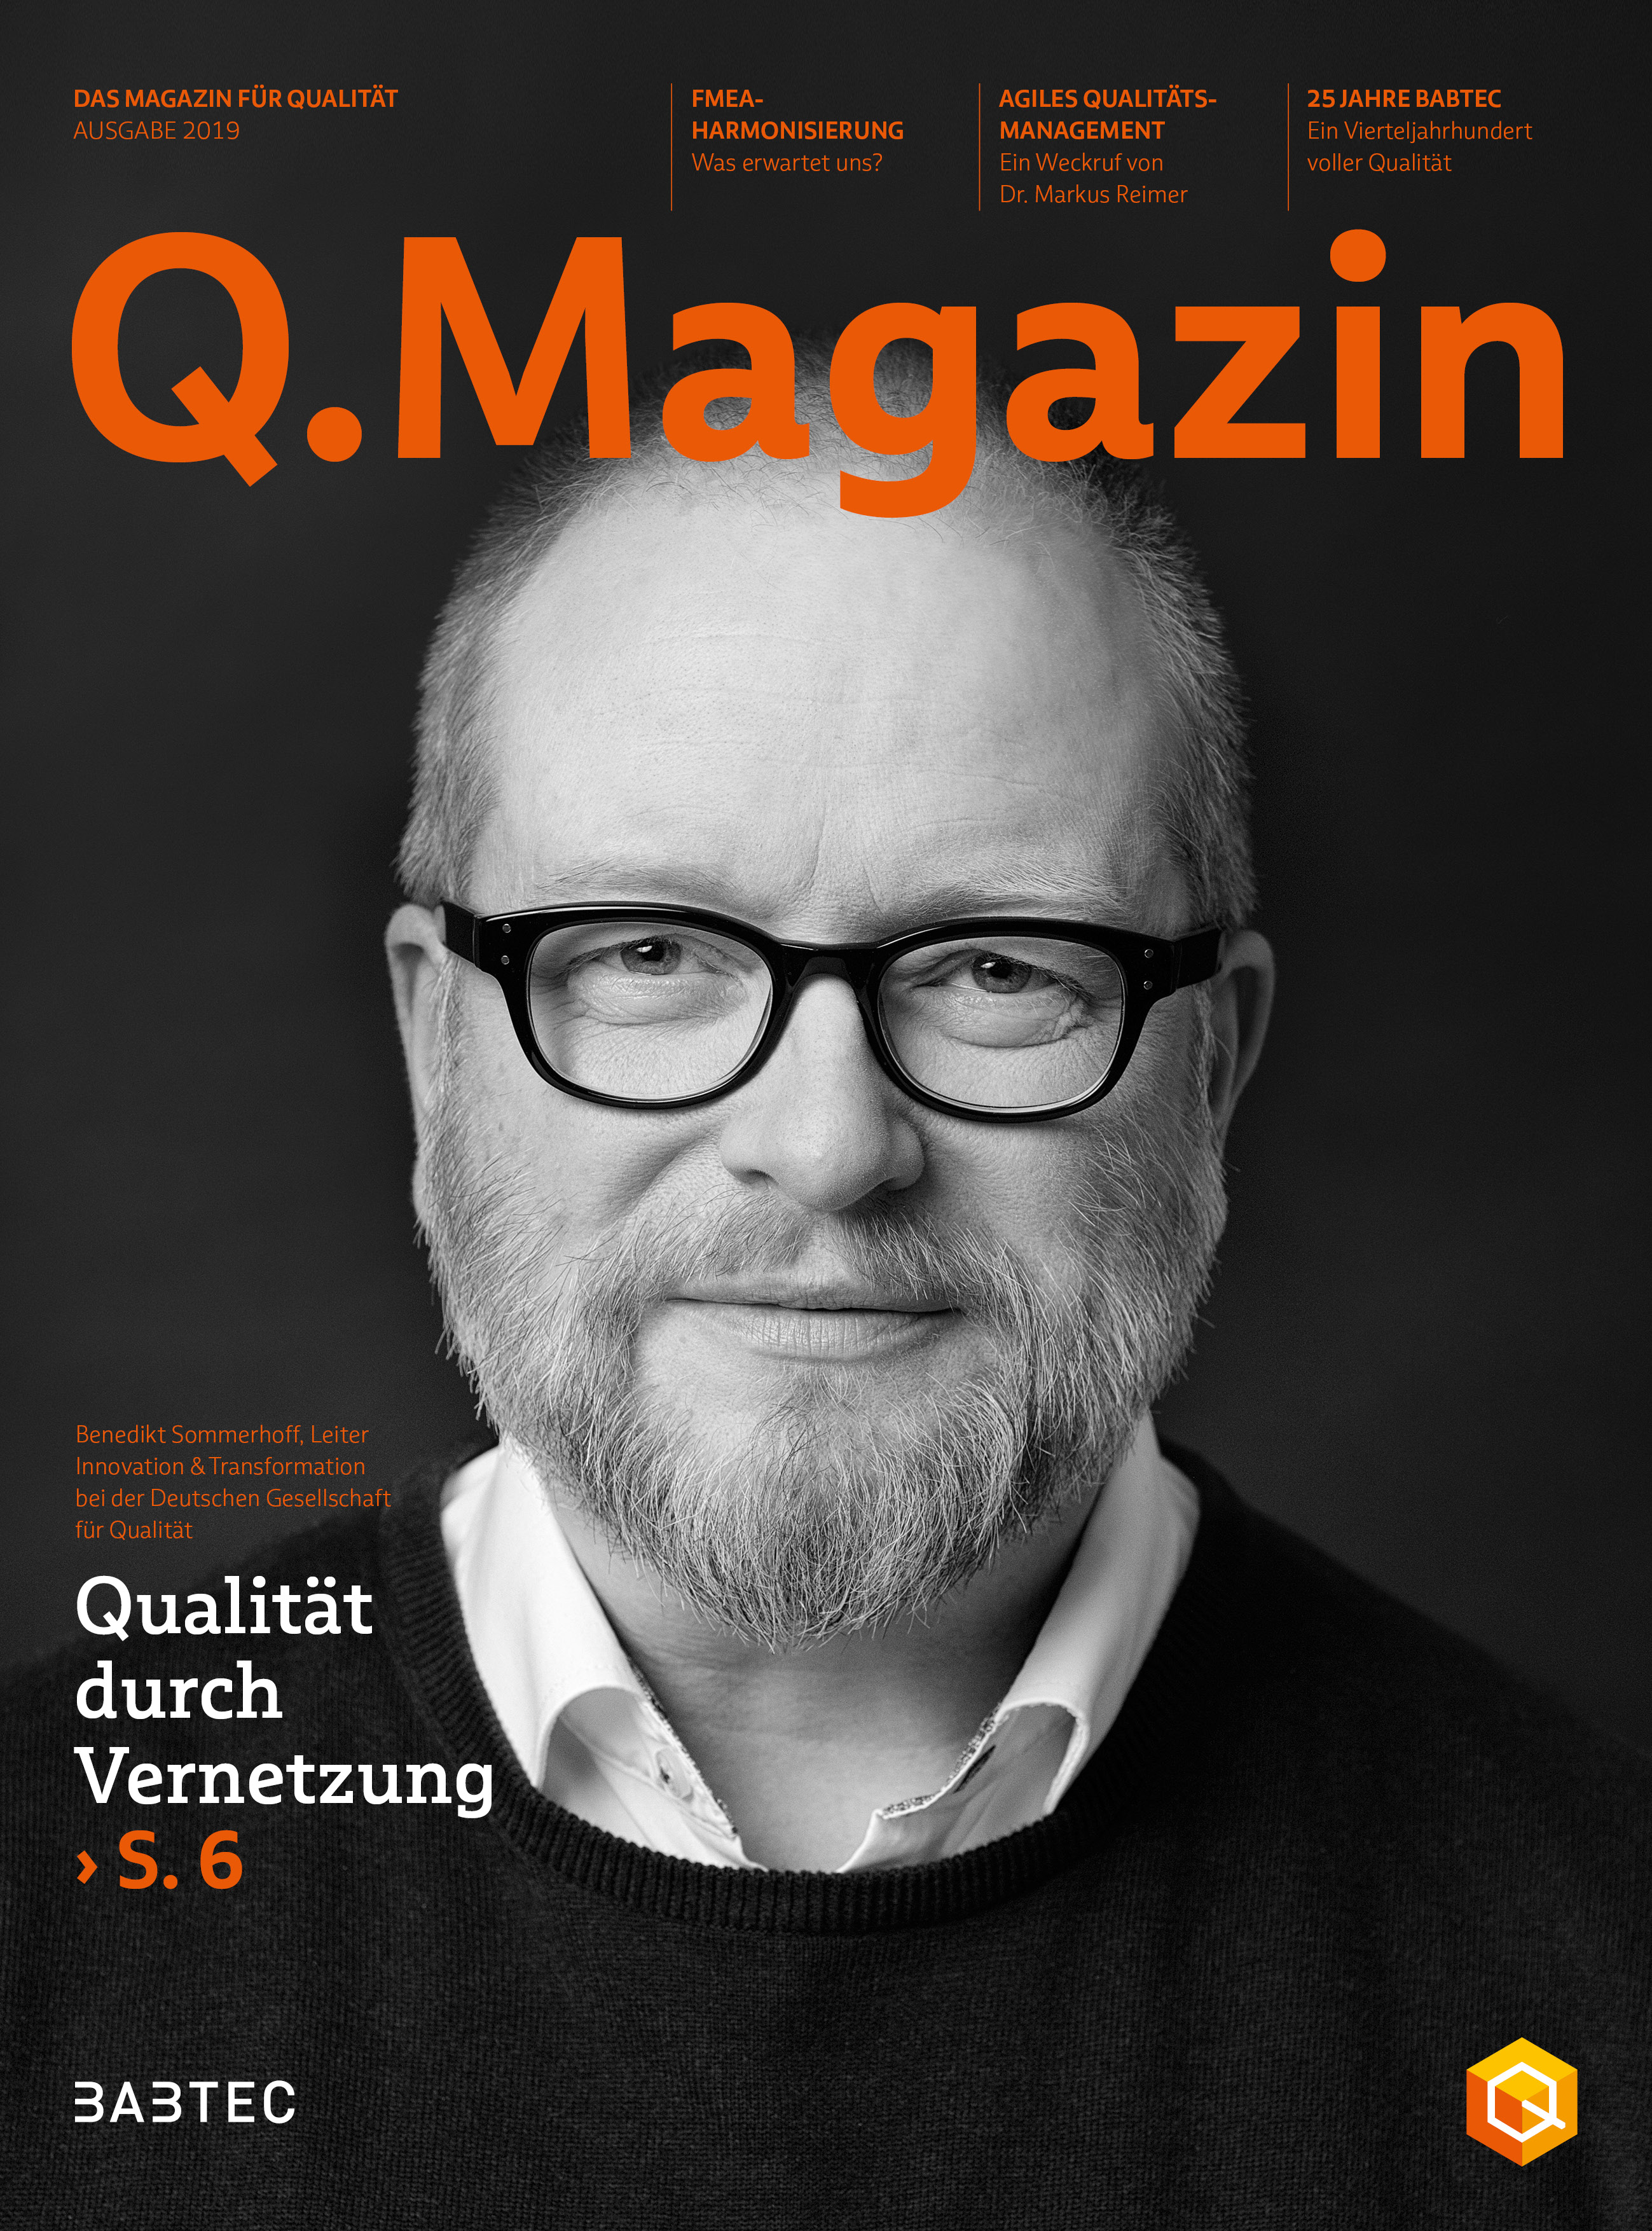 Babtec Publishes 2019 Edition of Q.Magazine